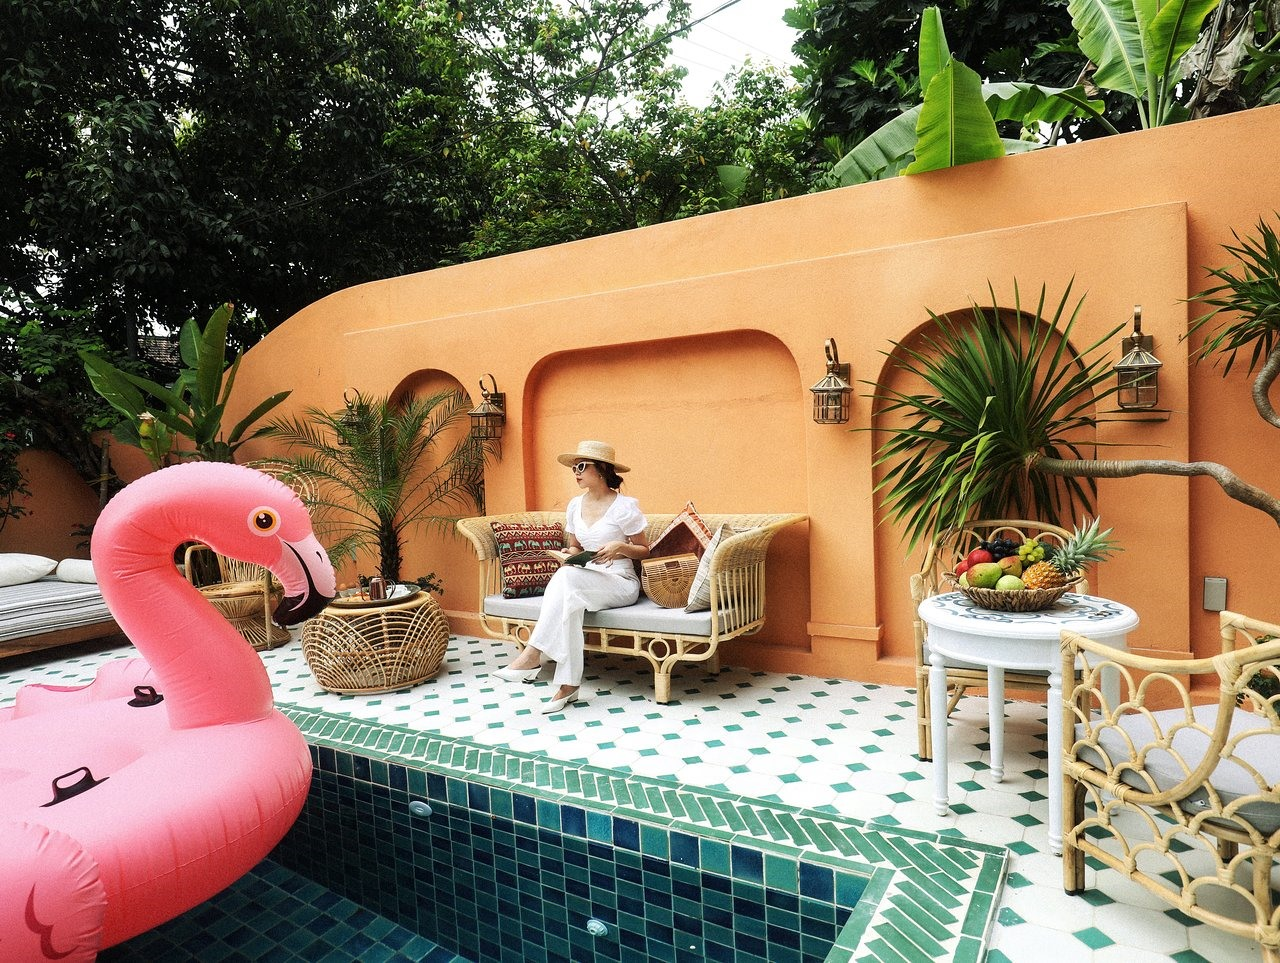 The Mansion Hoi An has a green space, suitable for relaxation. Swimming pool is small but designed in impressive style. It is just 3 km form Cua Dai beach. Visitors are provided with very good services, delicious foods and drinks and especially free bikes or motorbikes during the time staying at the resort. Photo: tripadvisor